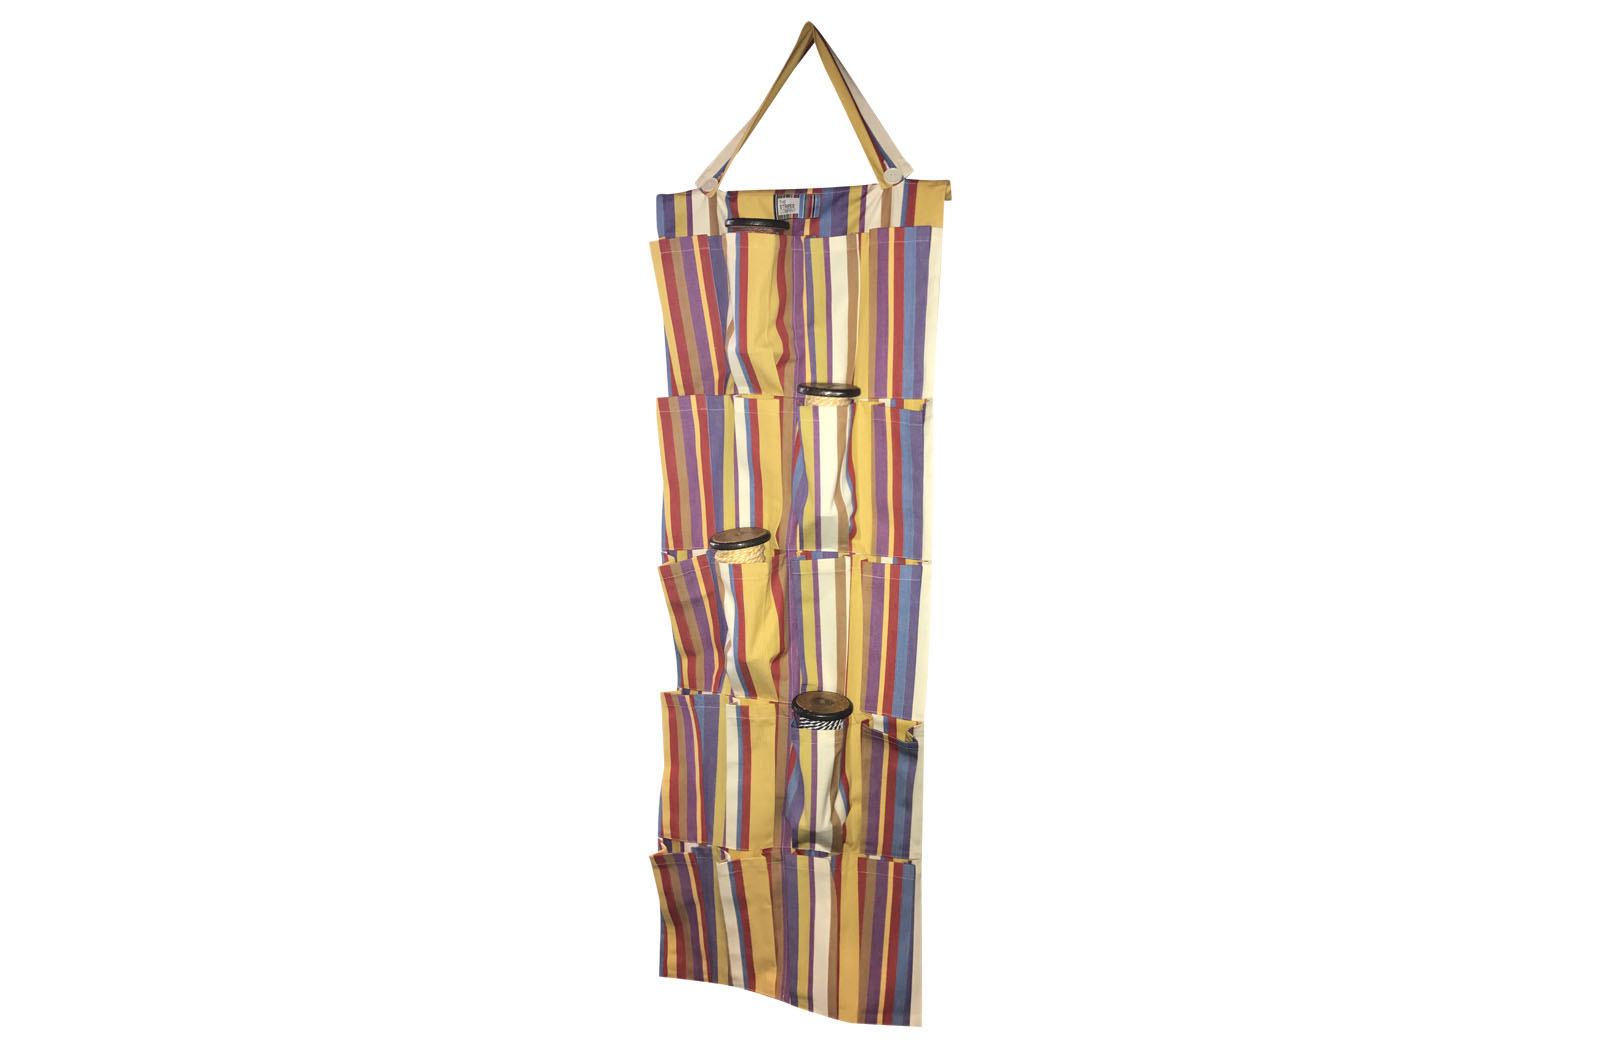 apricot, rust, blue - Hanging Pocket Organisers | Hanging Storage Organiser Tidy